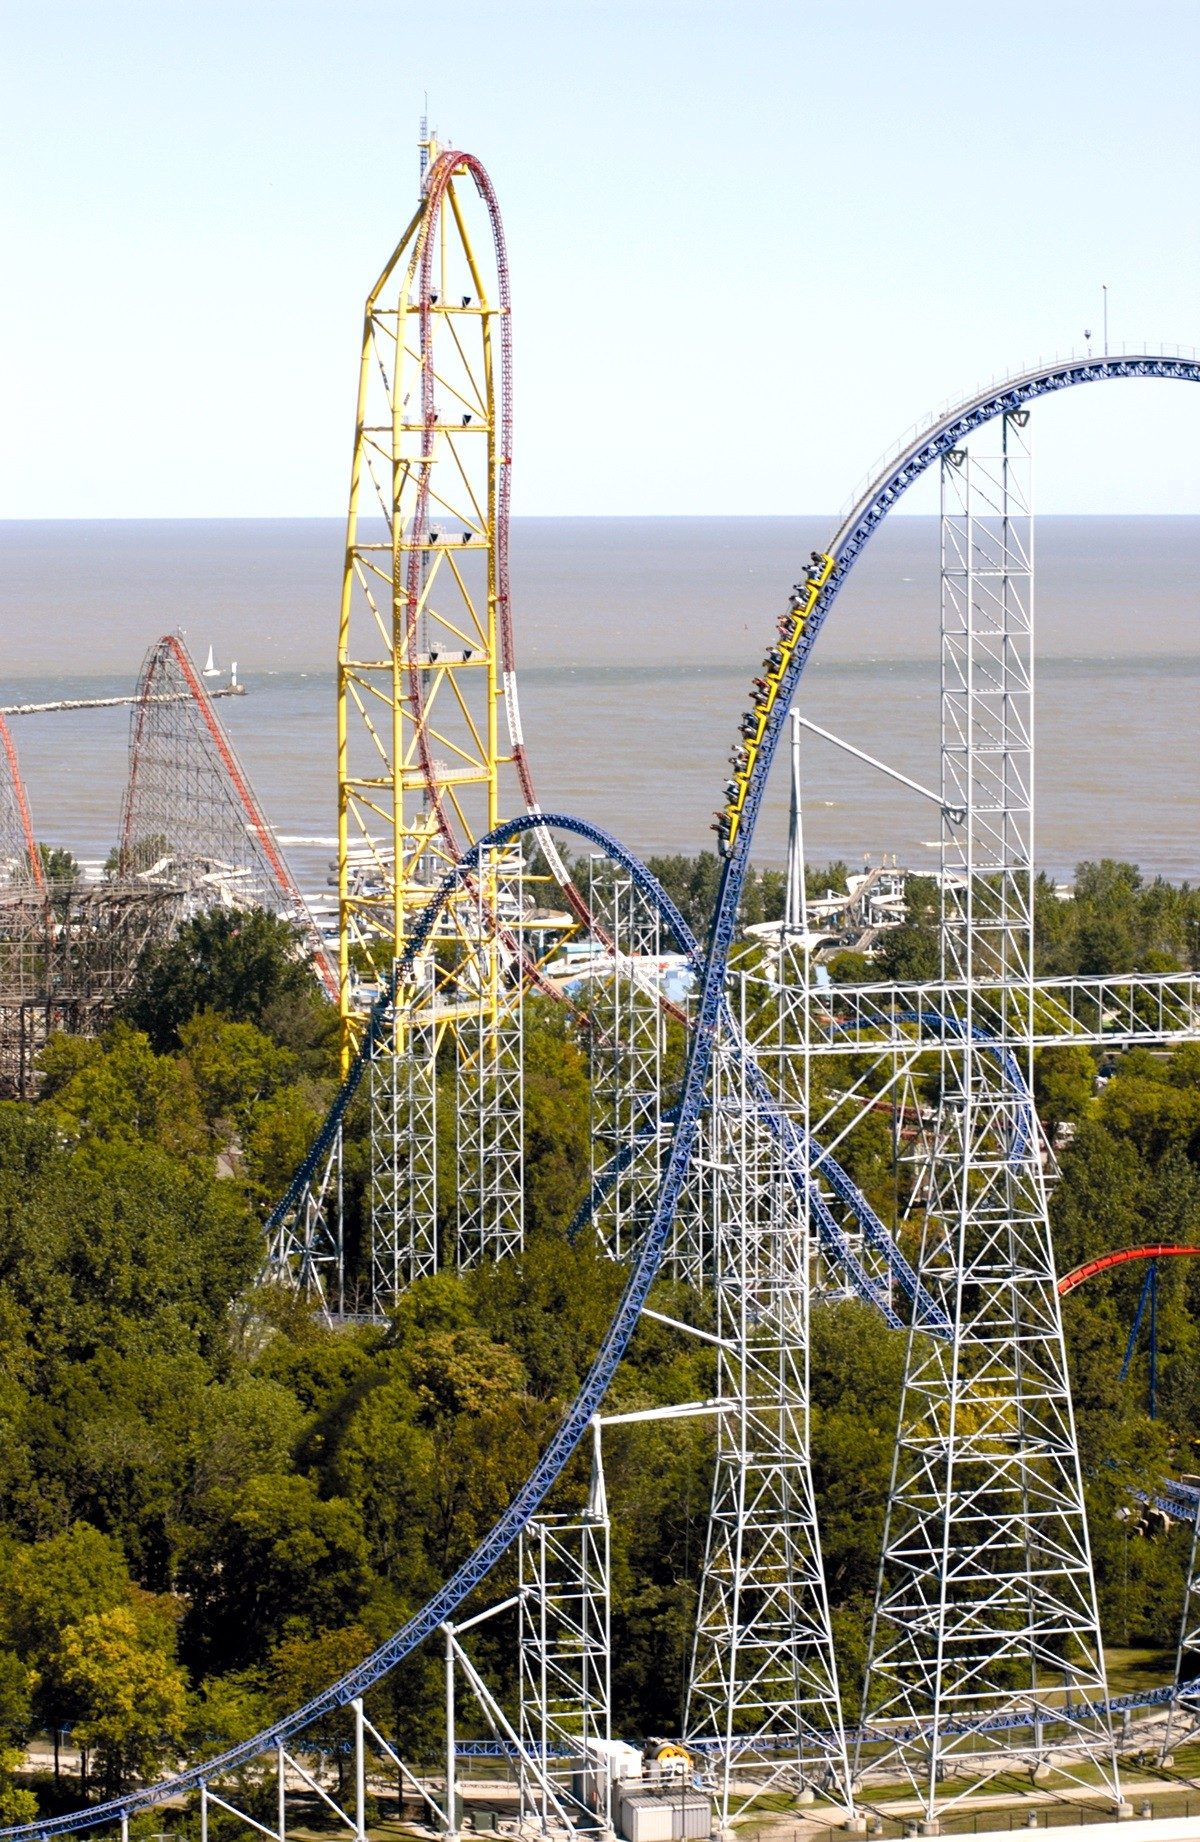 Cedar Point plans to offer a full season of entertainment in 2021, including the celebration of its postponed 150th anniversary, signature events, a new family river adventure ride and more. Opening Day is set for Friday, May 14. (Cedar Point photo)